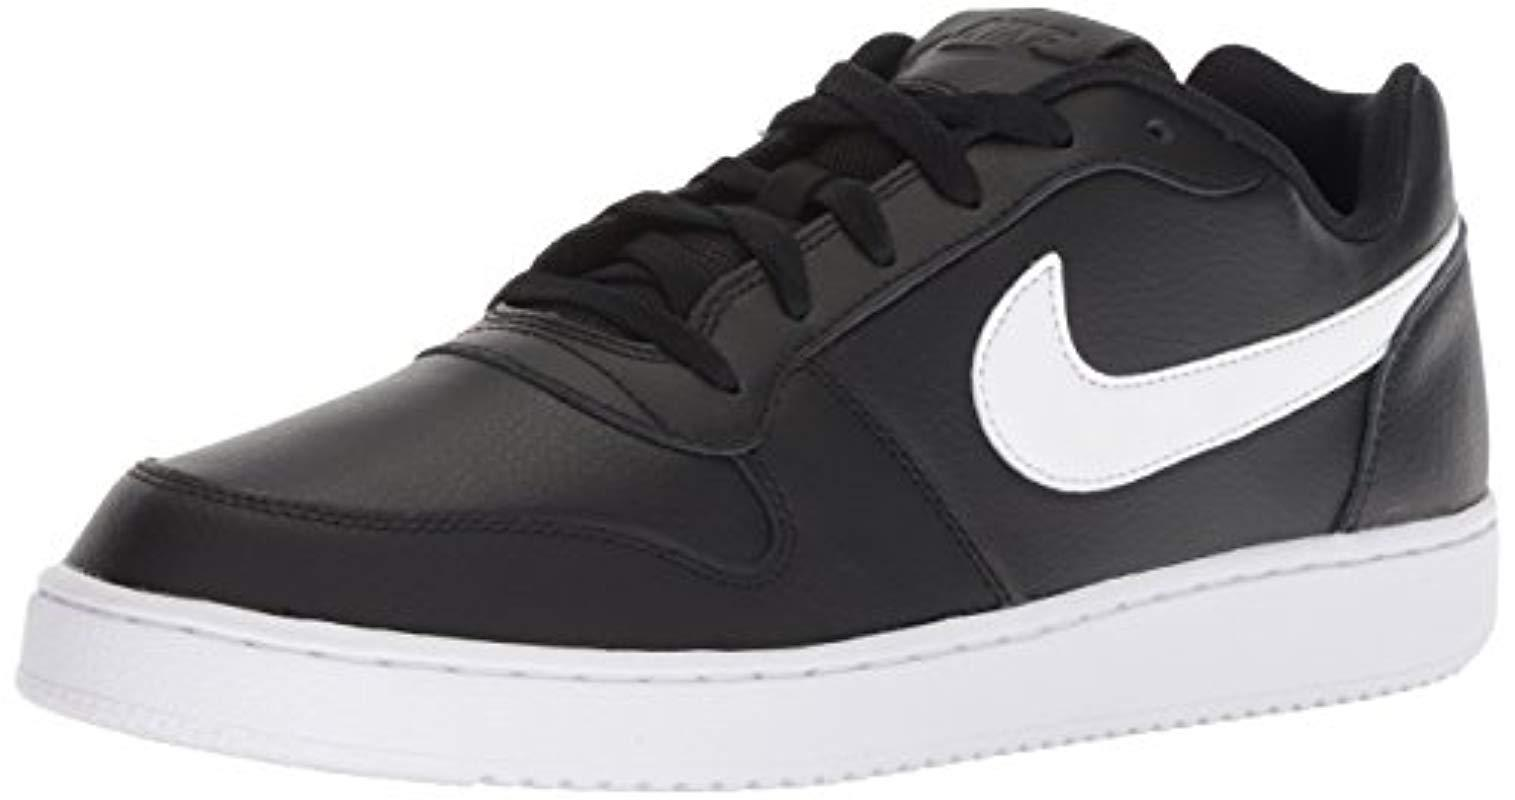 superior quality acd12 dcf5a ... greece nike blackwhite ebernon low sneaker.jpeg 36bc3 95e61